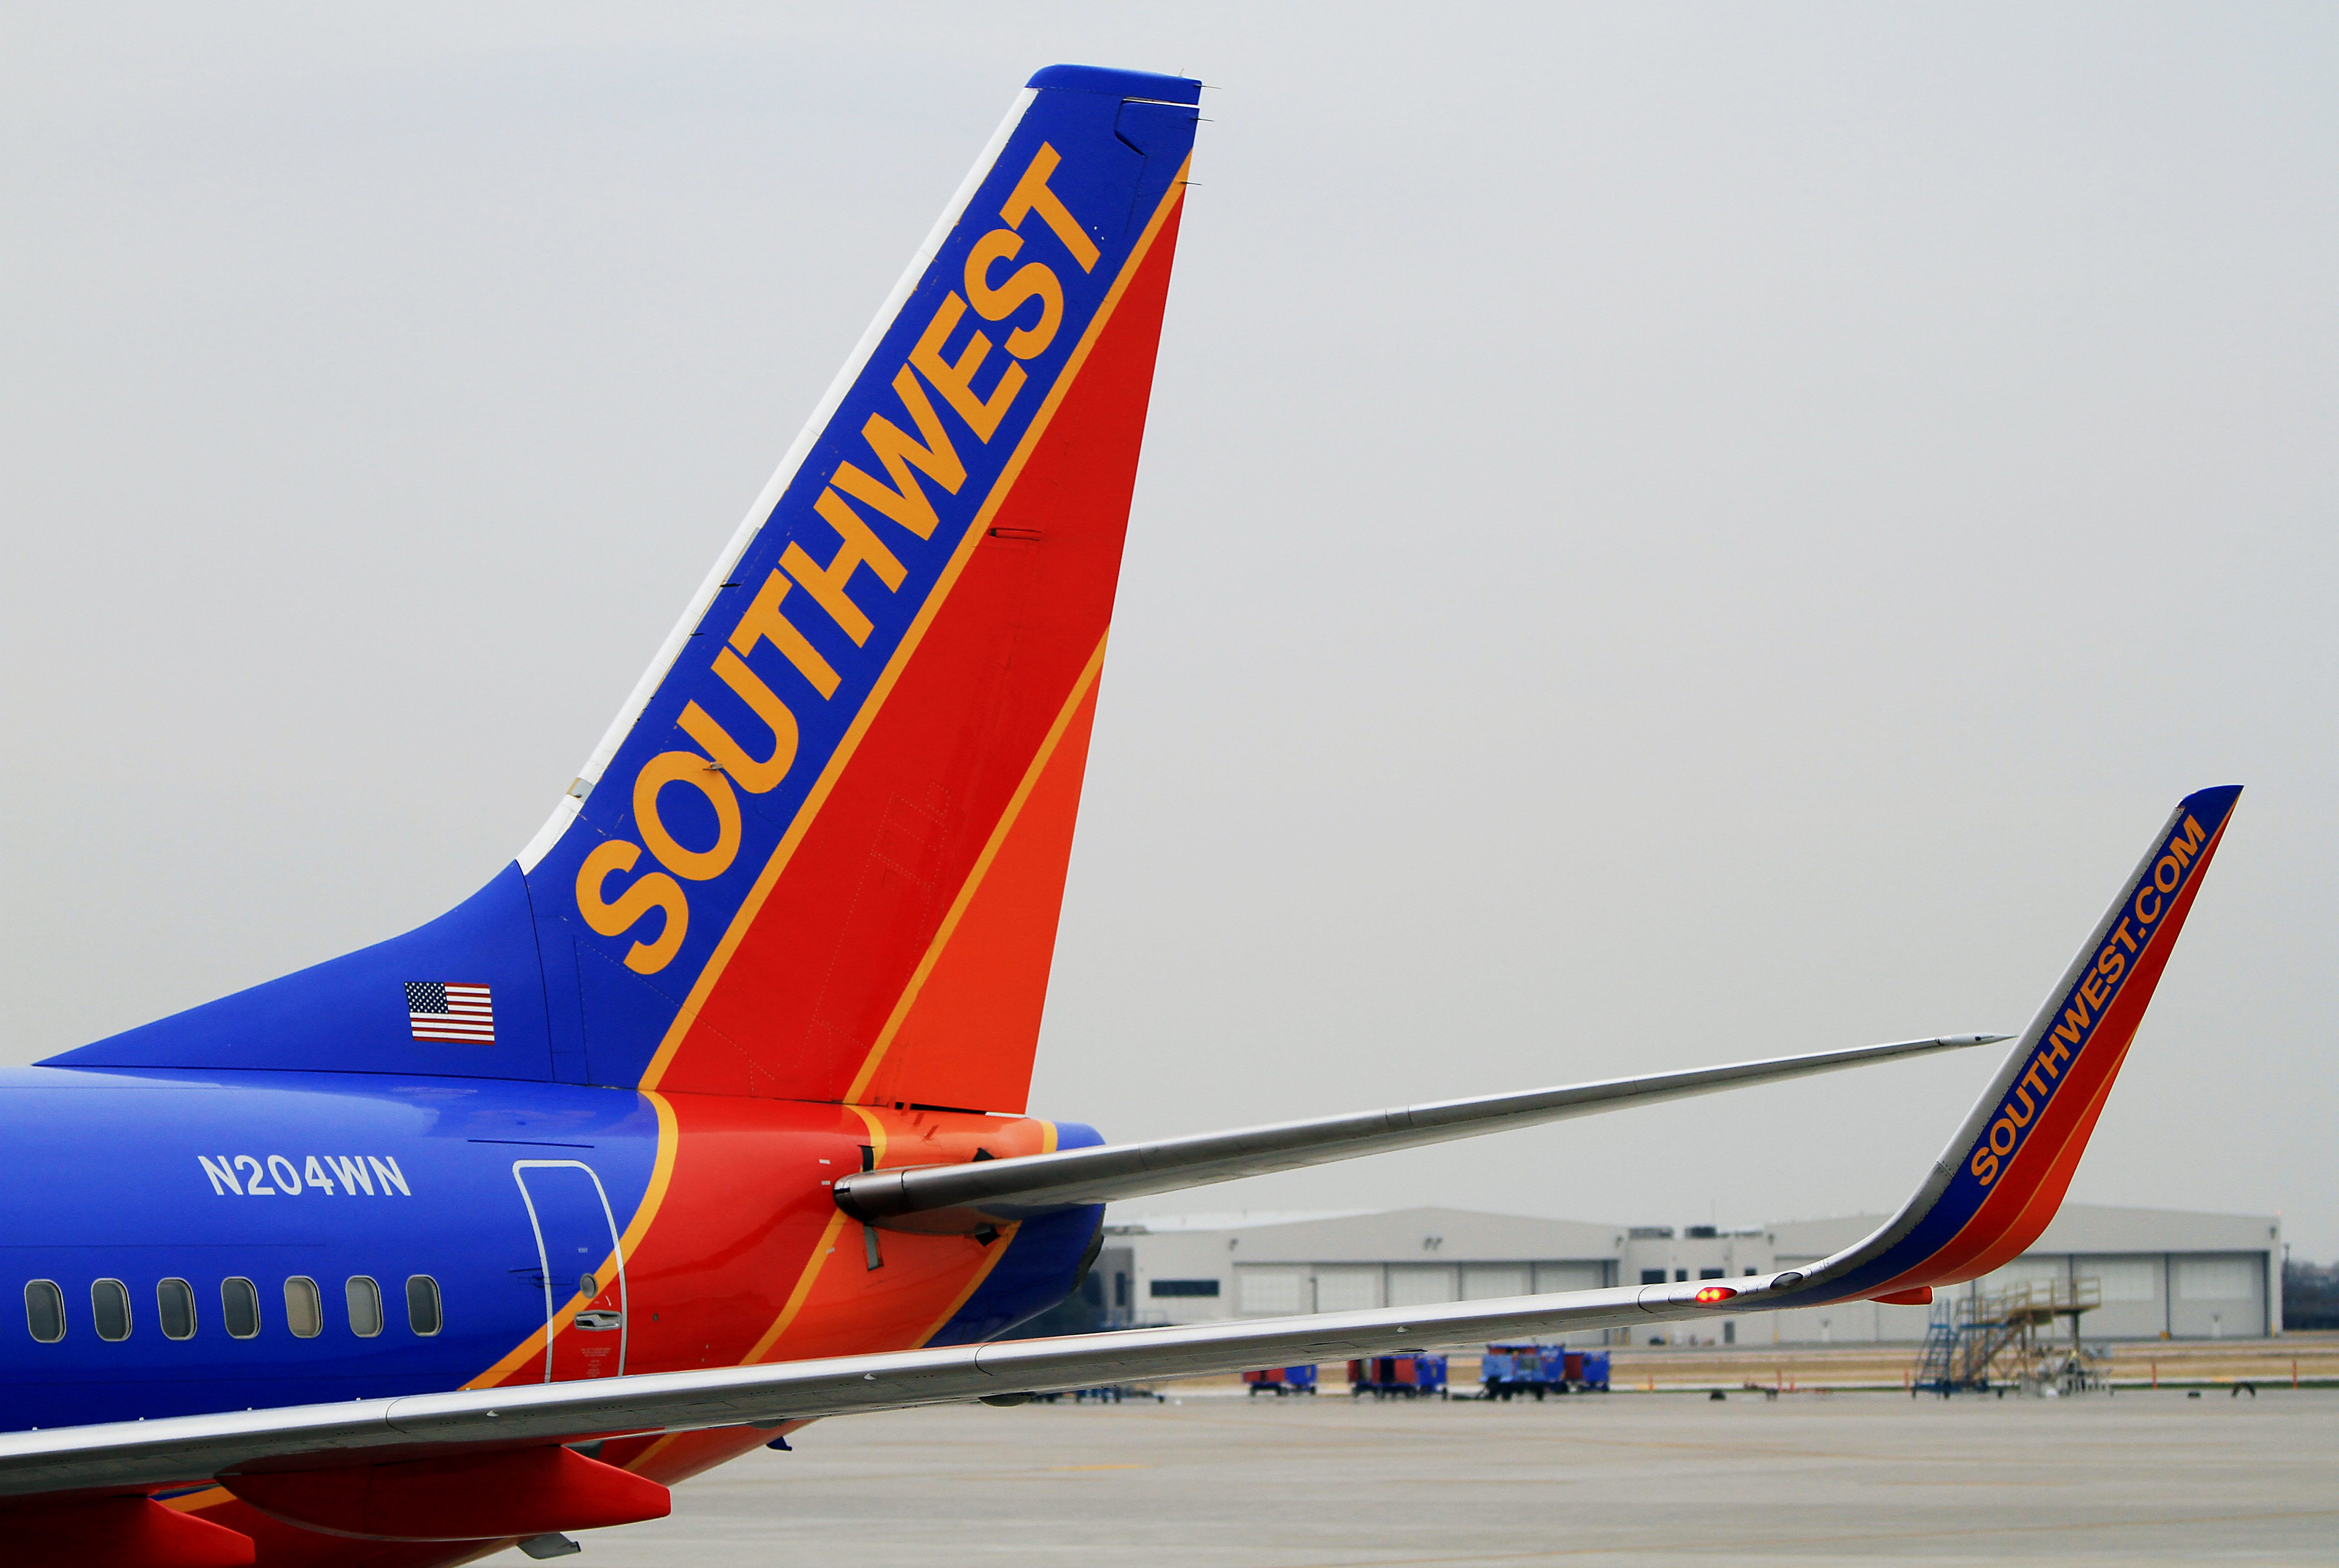 A Southwest Airlines Co. Boeing 737-7H4 plane sits at a gate at Dallas Love Field Airport in Dallas, Texas, U.S., on Monday, Feb. 3, 2014.